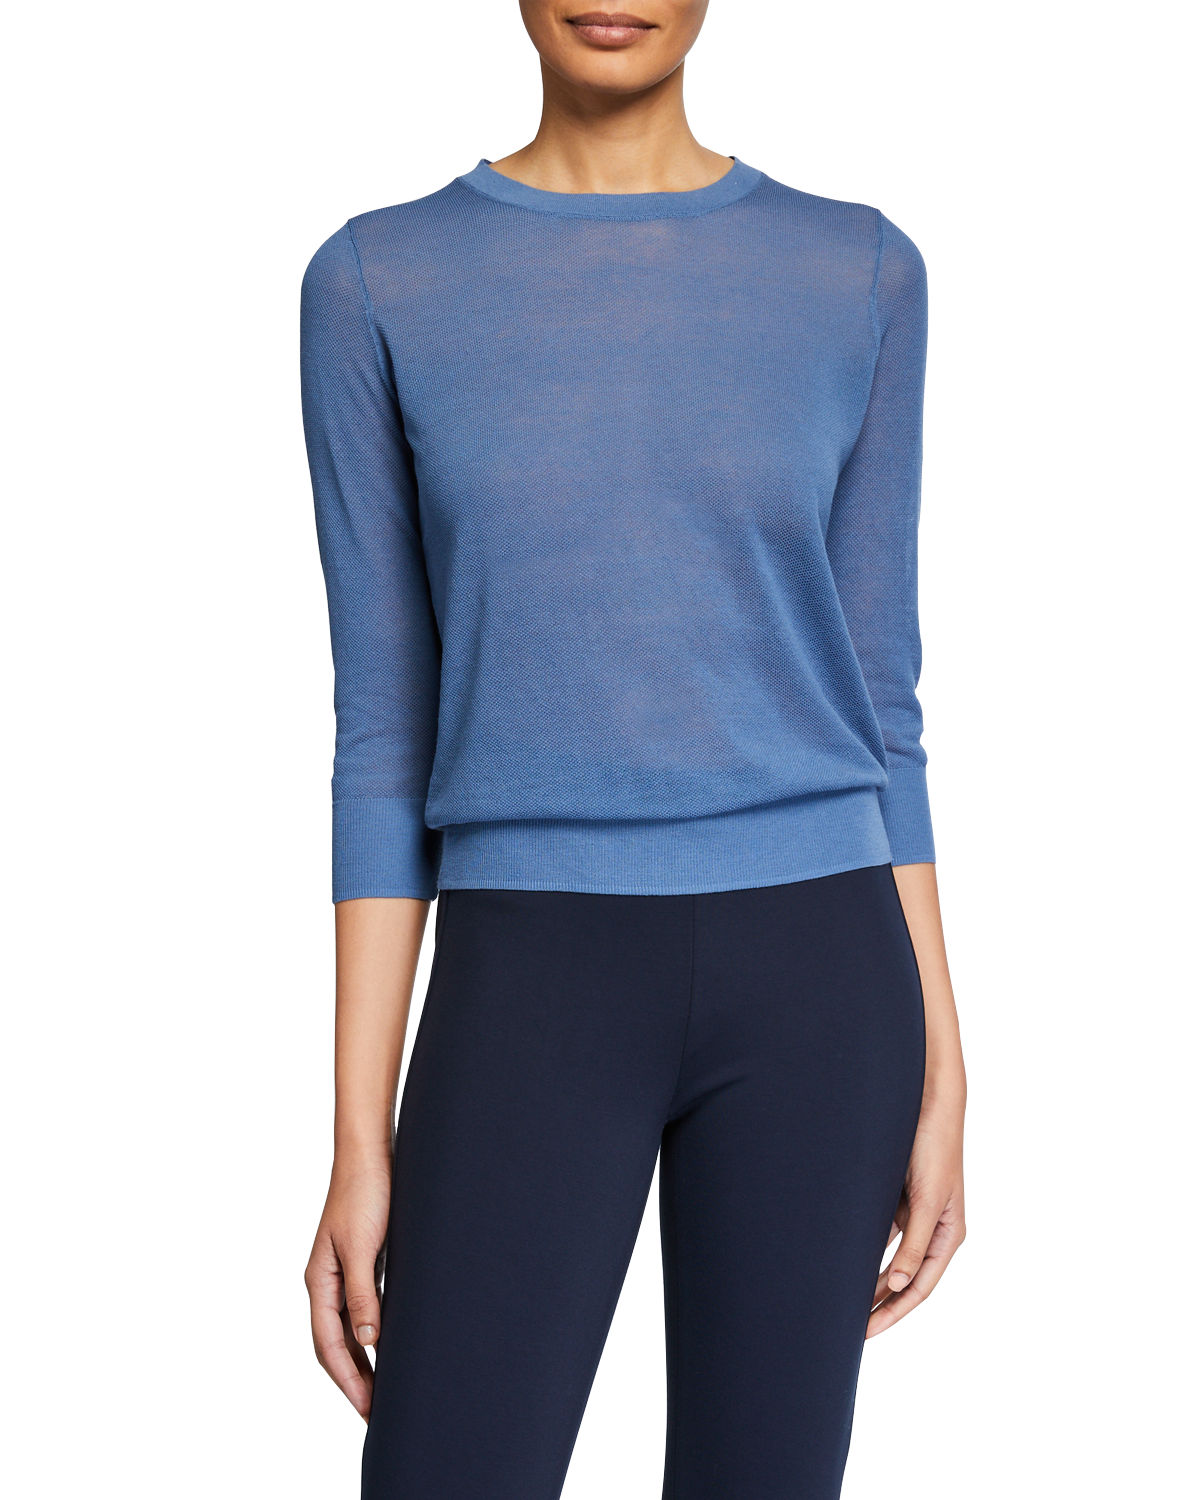 Vince 0 TEXTURED ELBOW-SLEEVE PULLOVER